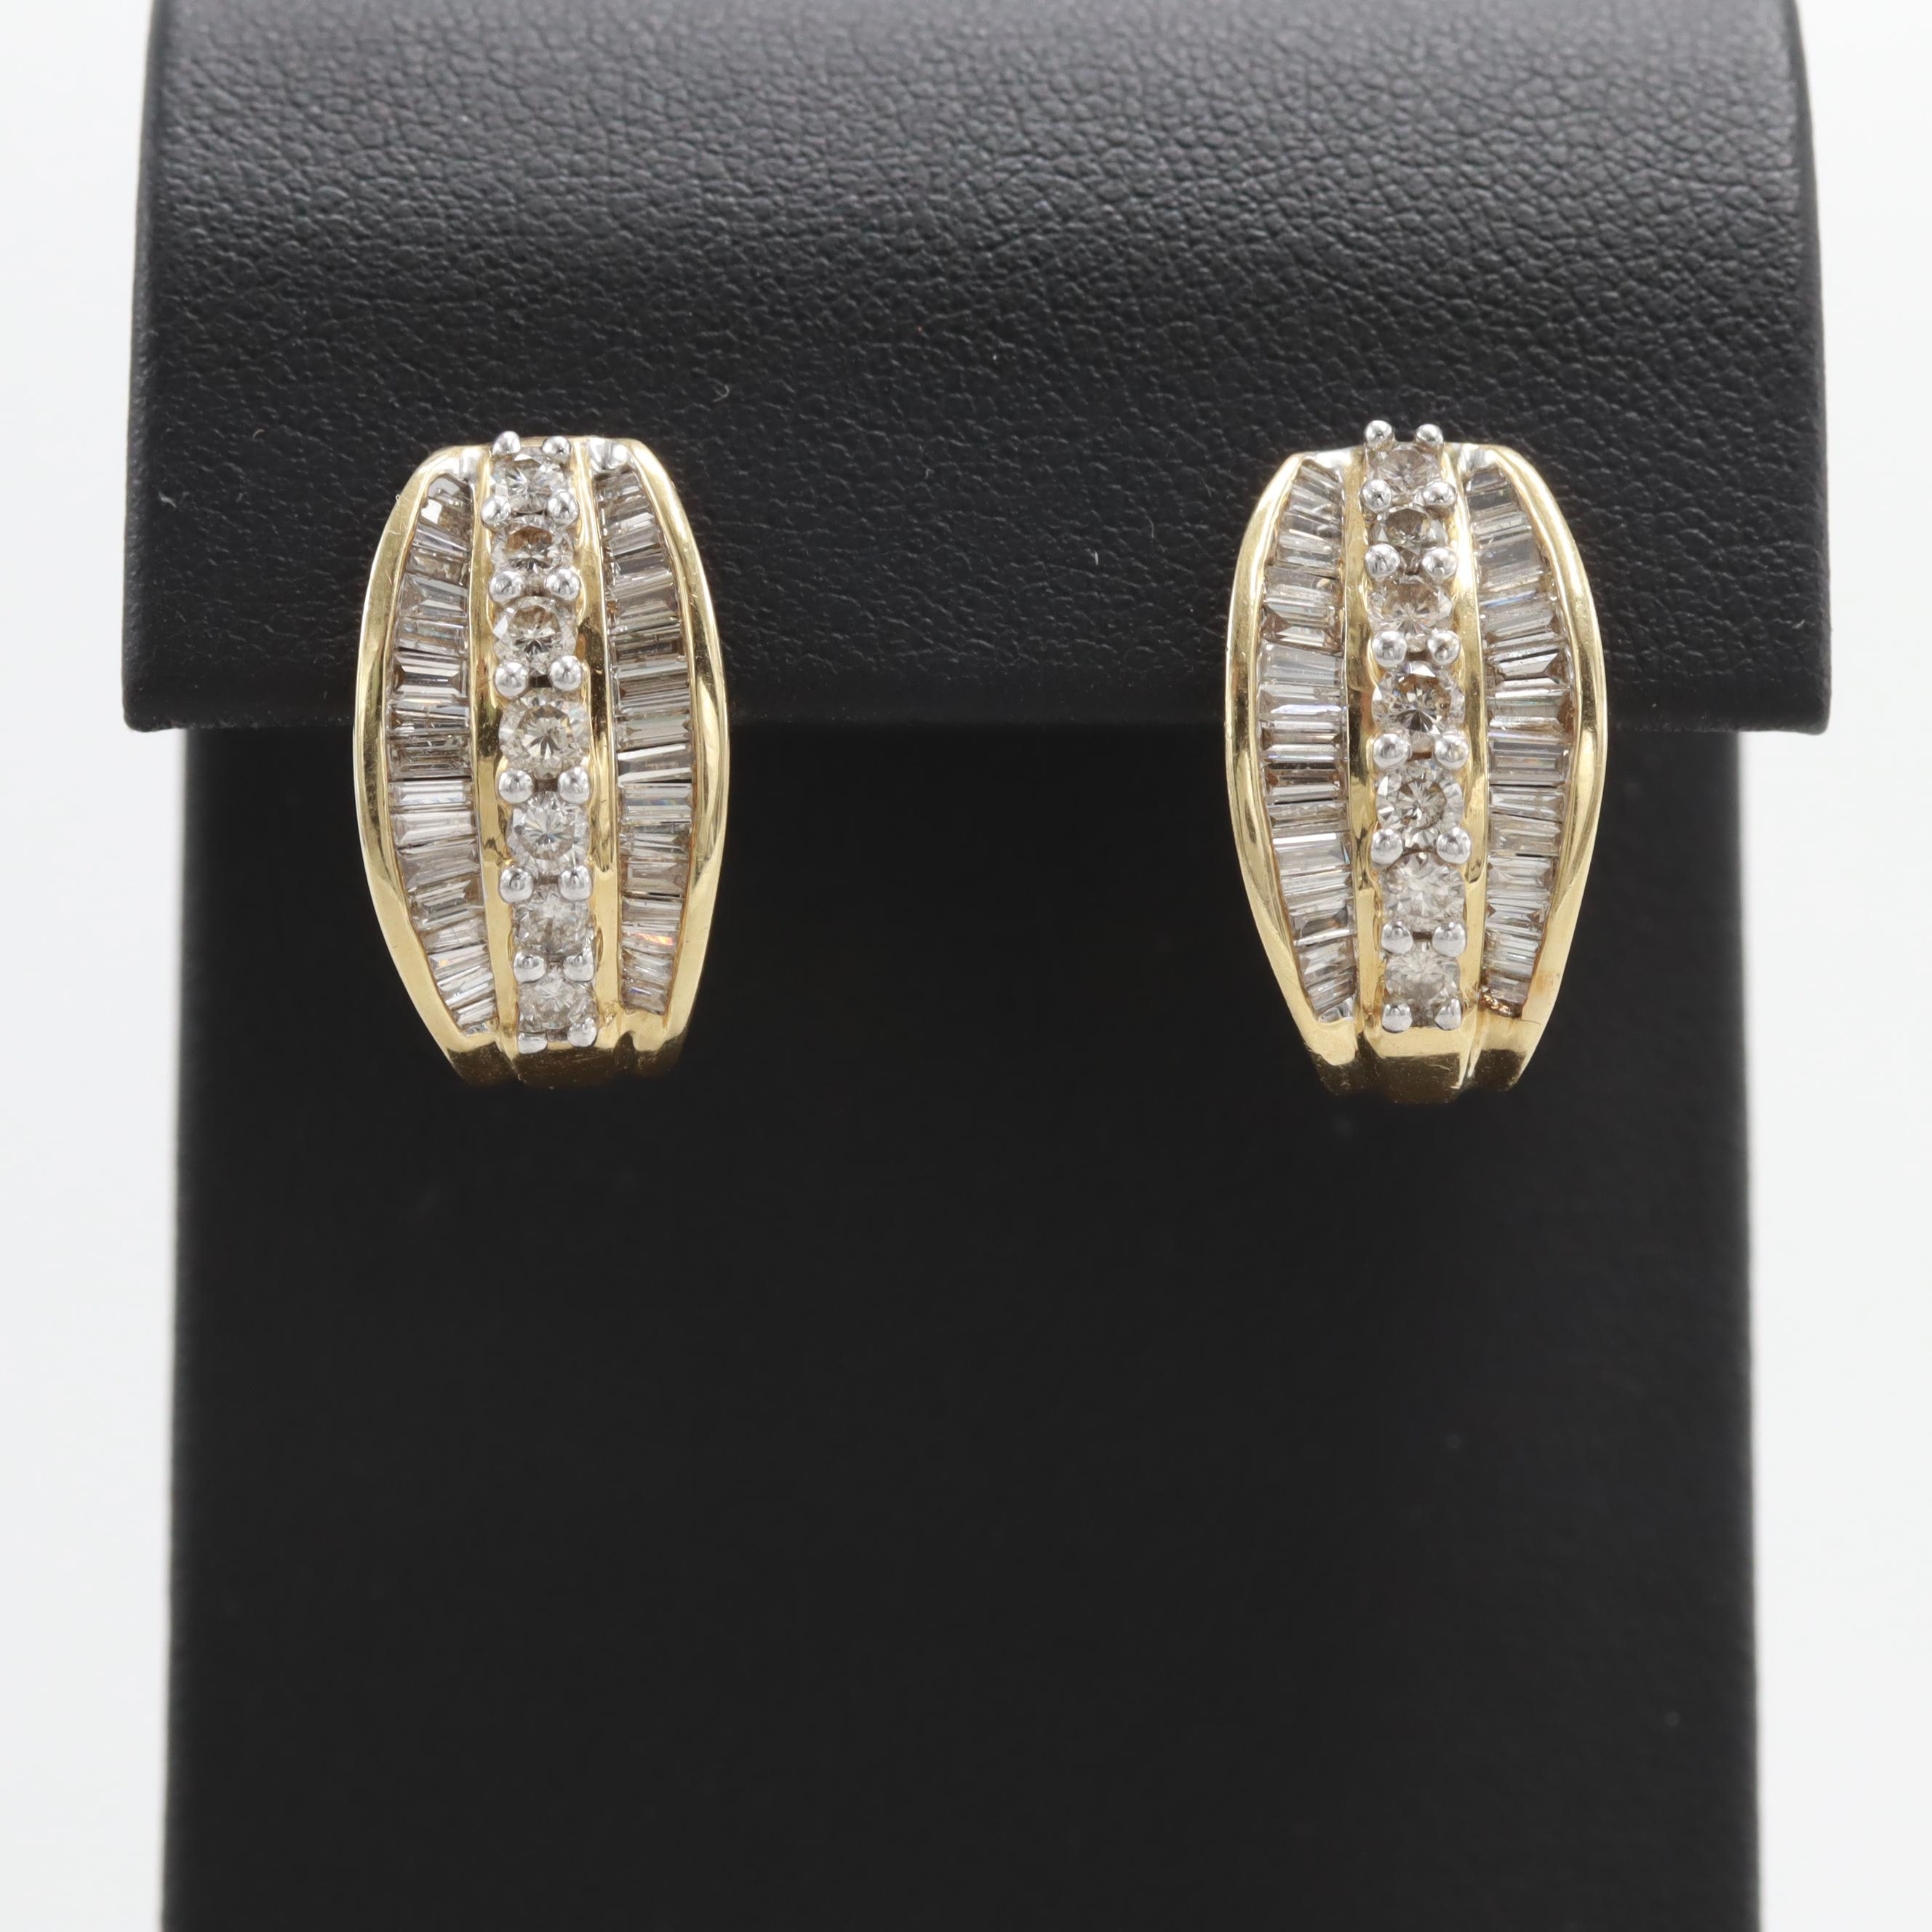 14K Yellow Gold 1.75 CTW Diamond Earrings